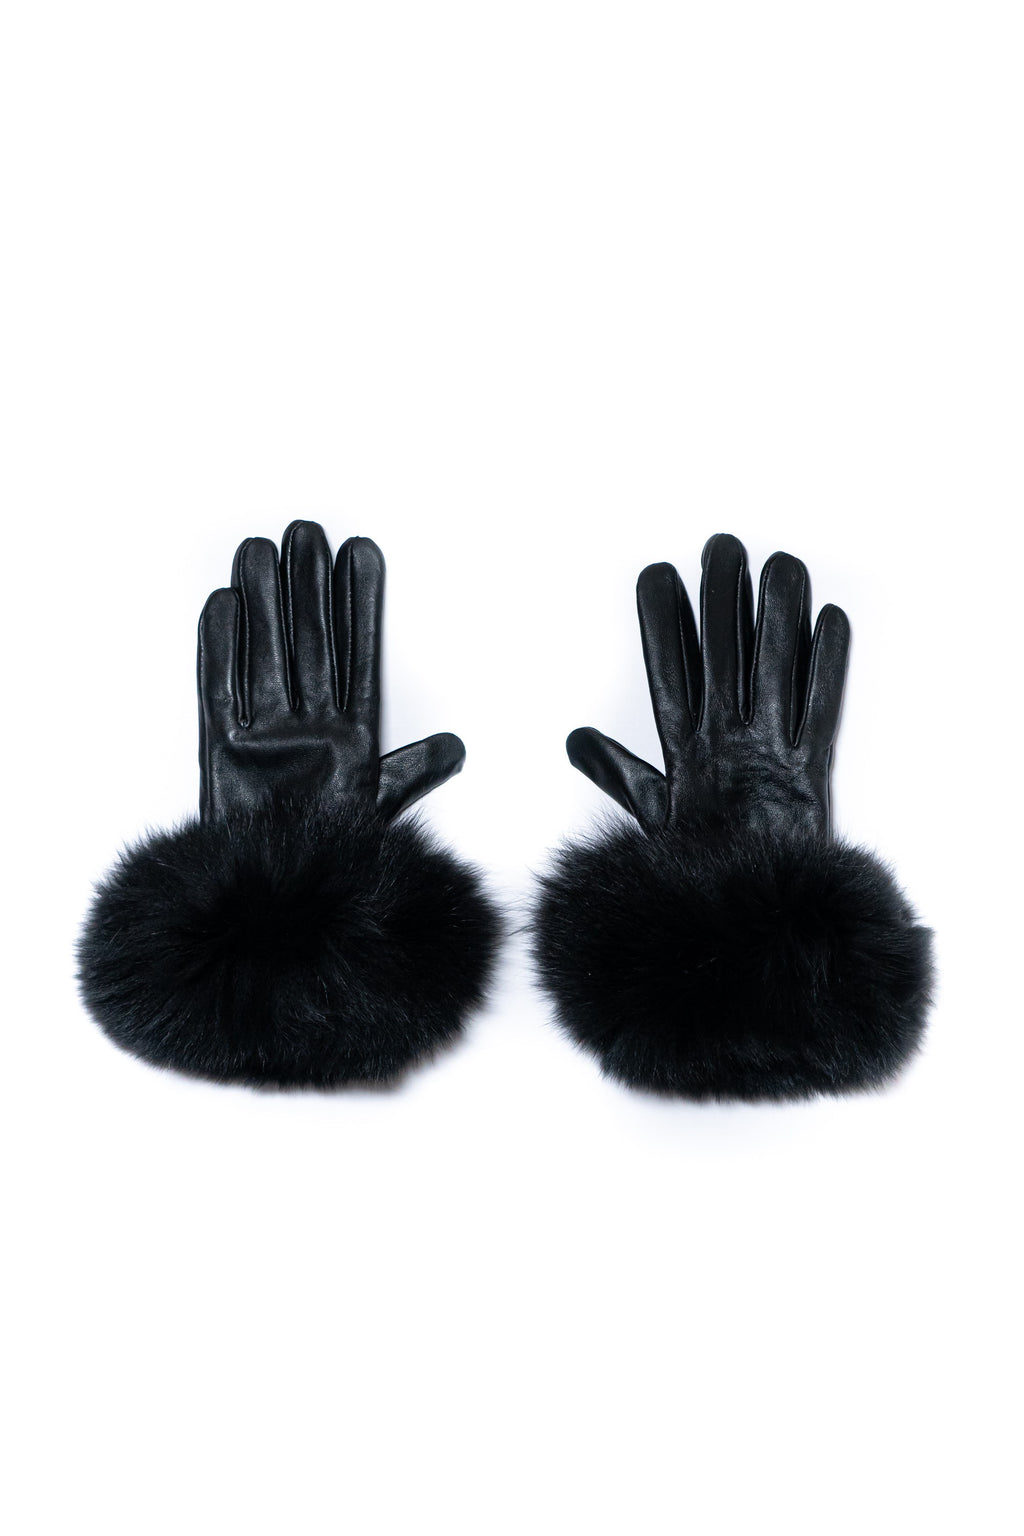 Black Leather Gloves - Pom Pom London